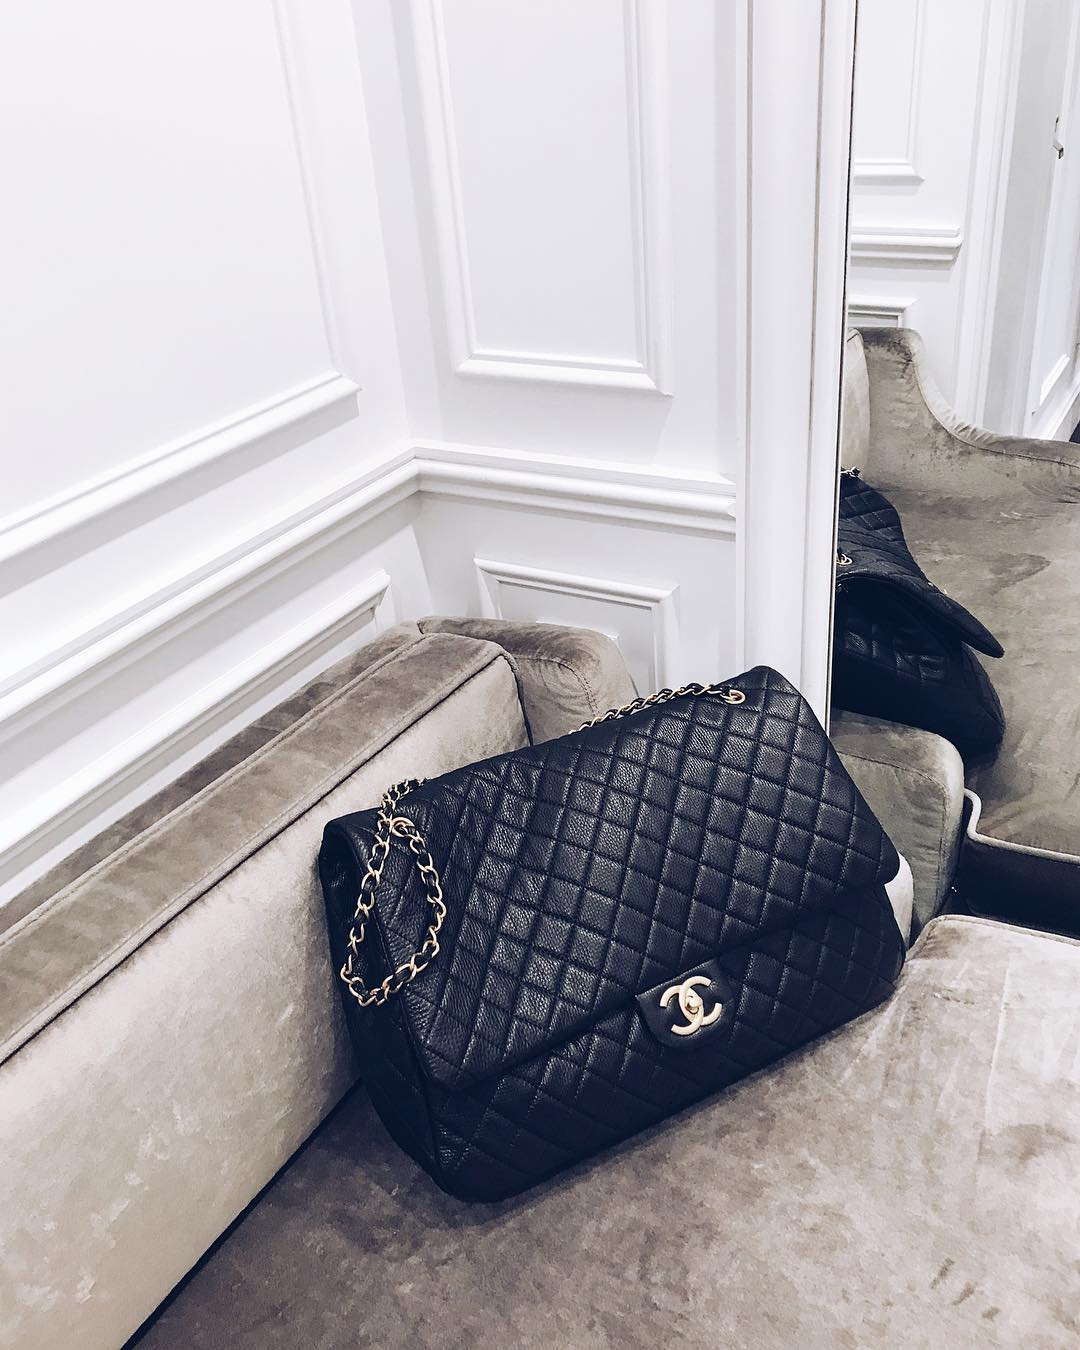 The Chanel XXL Bag Has Sizes Now